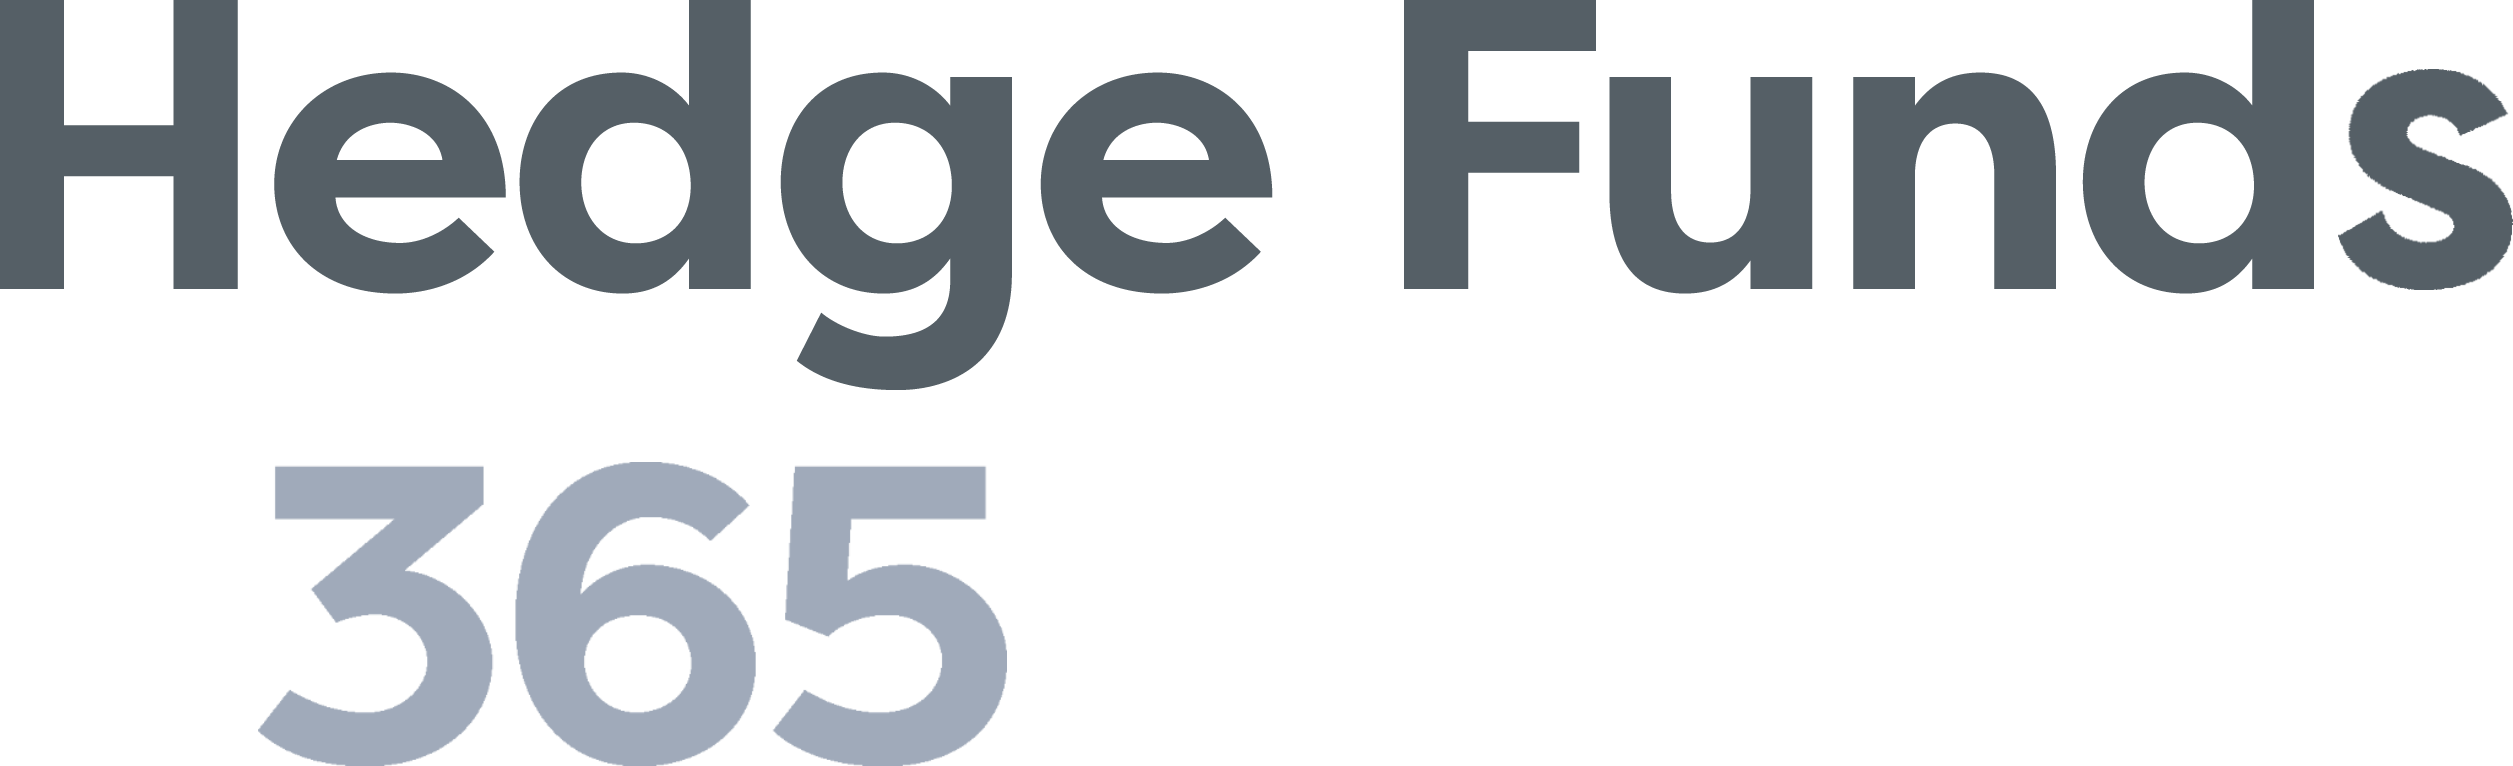 Hedge Funds Community Hub